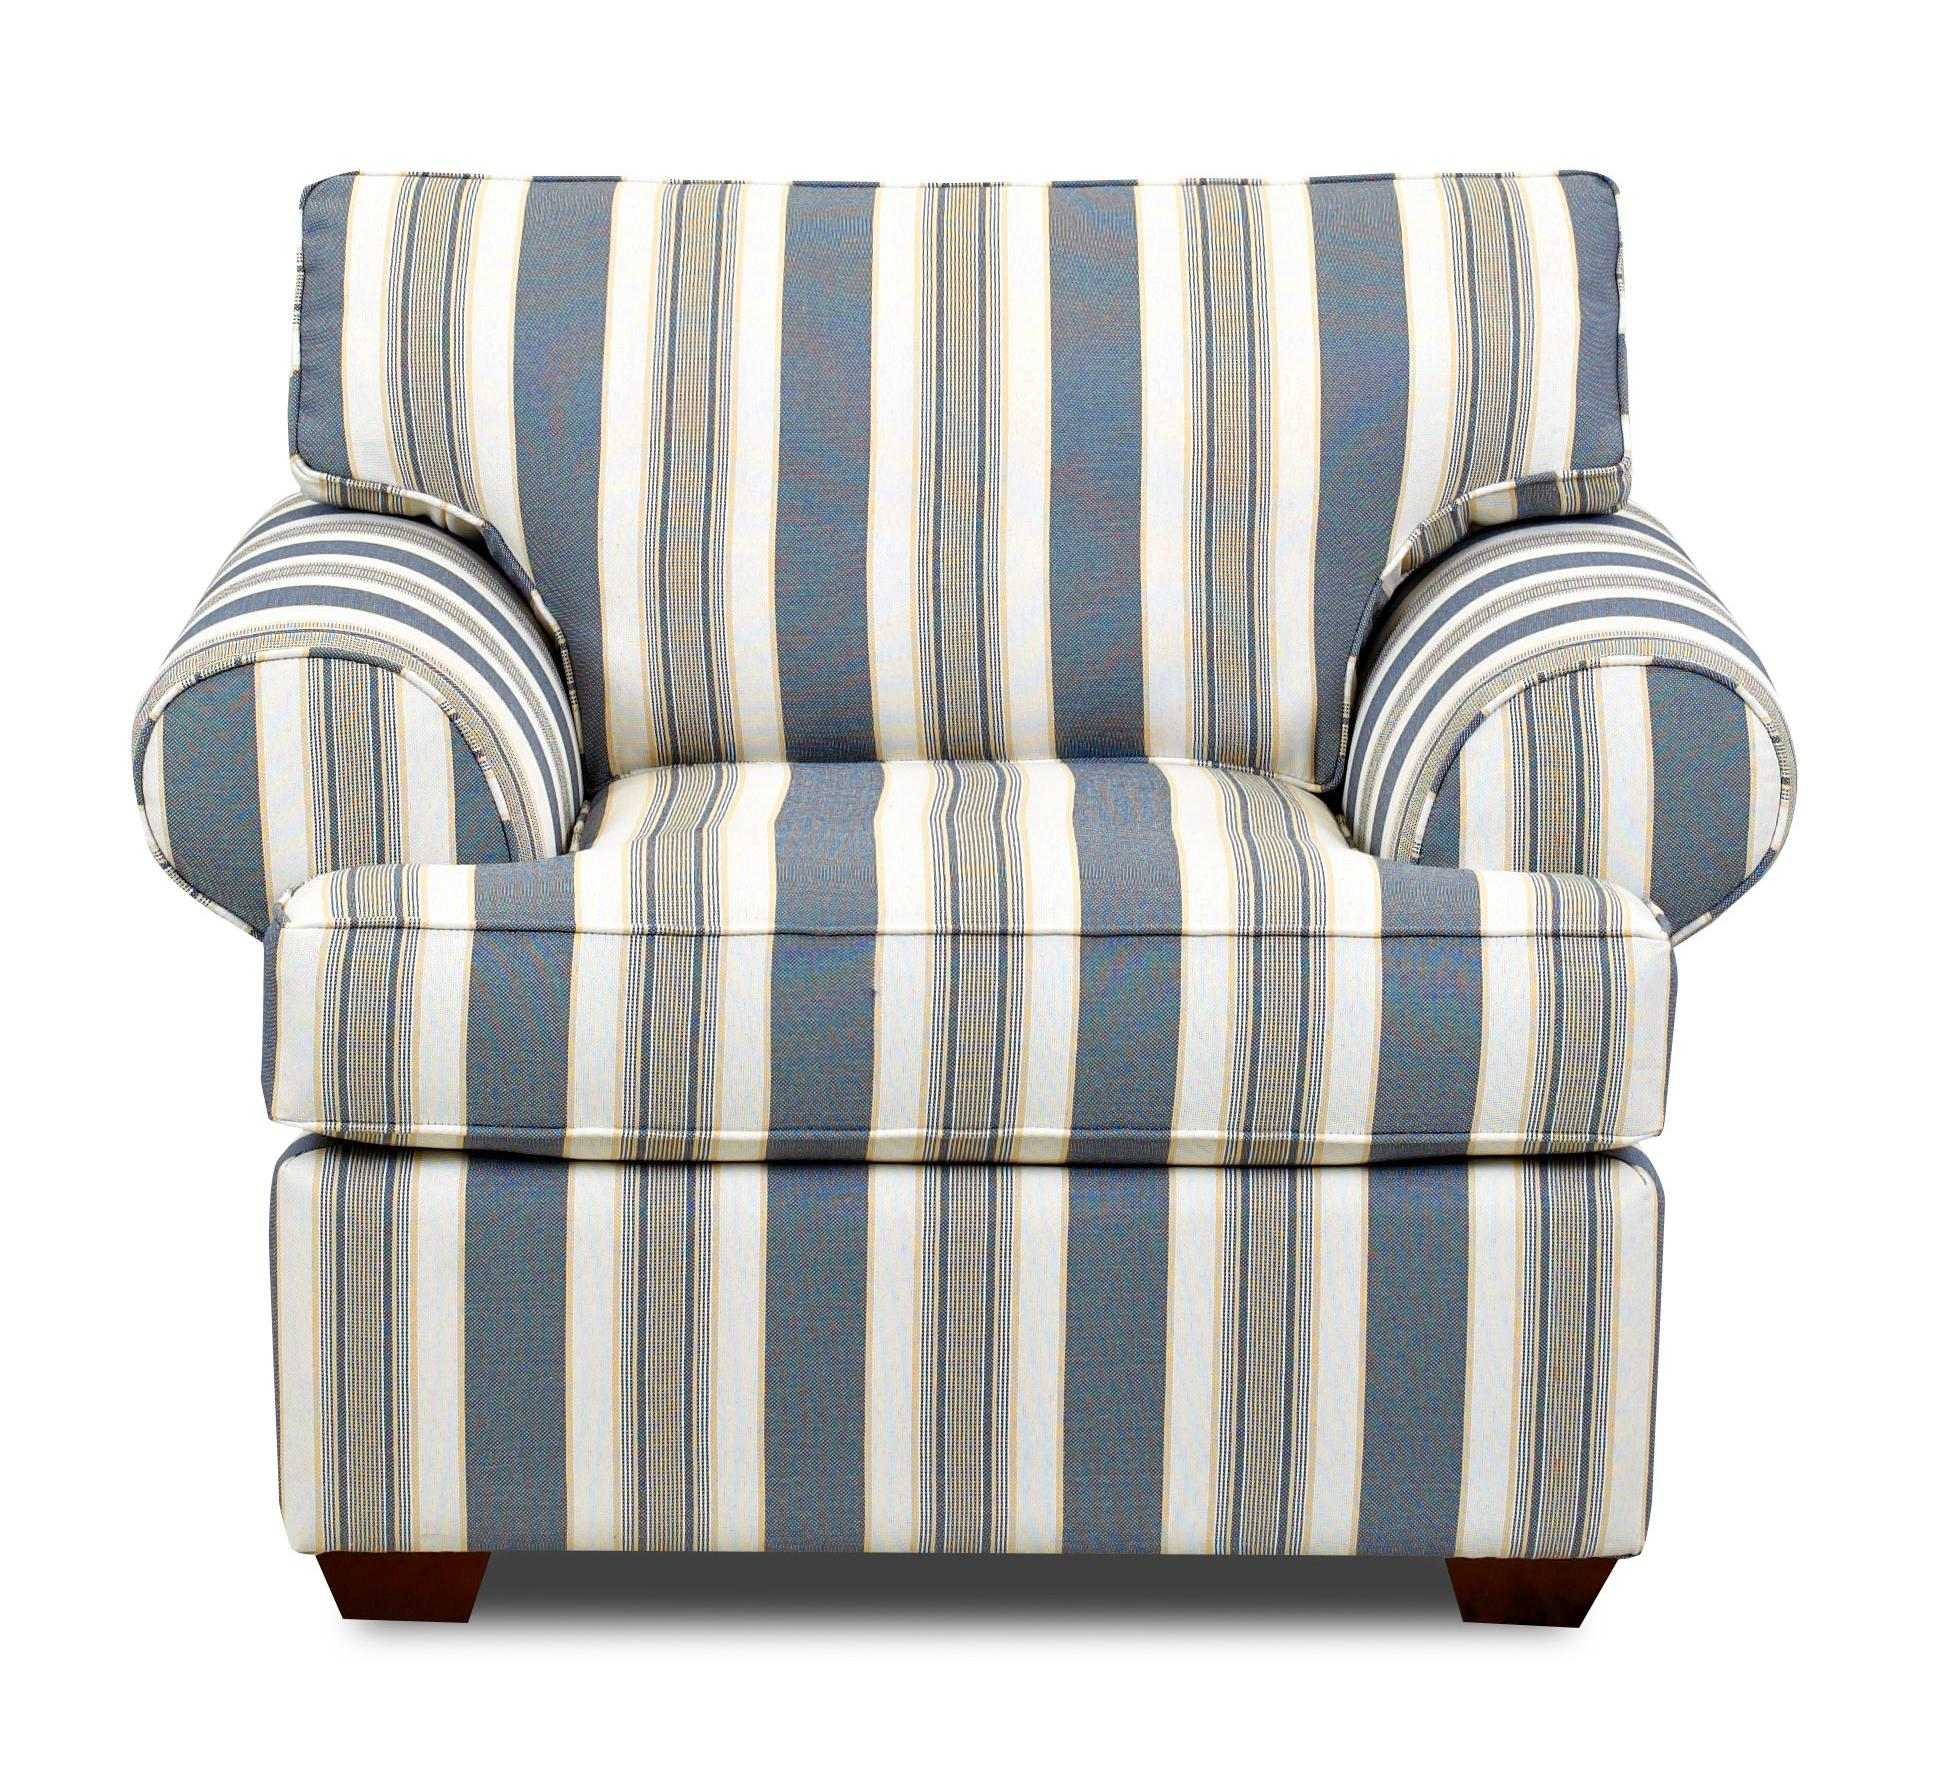 Upholstered Chair with Rolled Arms